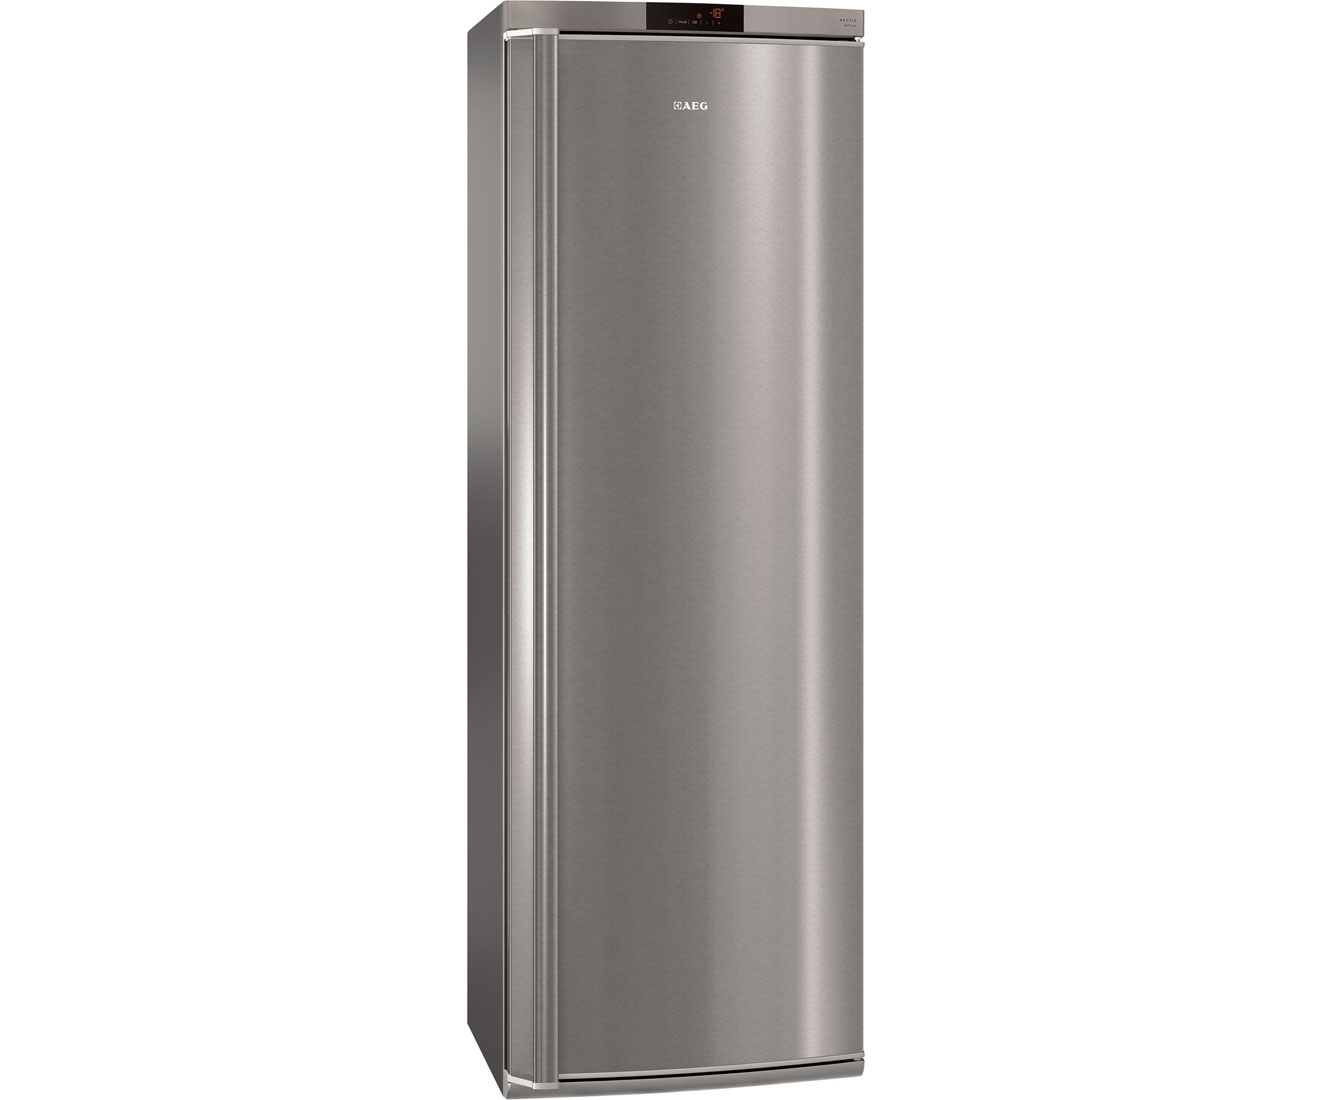 AEG A72710GNX1 Upright Freezer - Stainless Steel